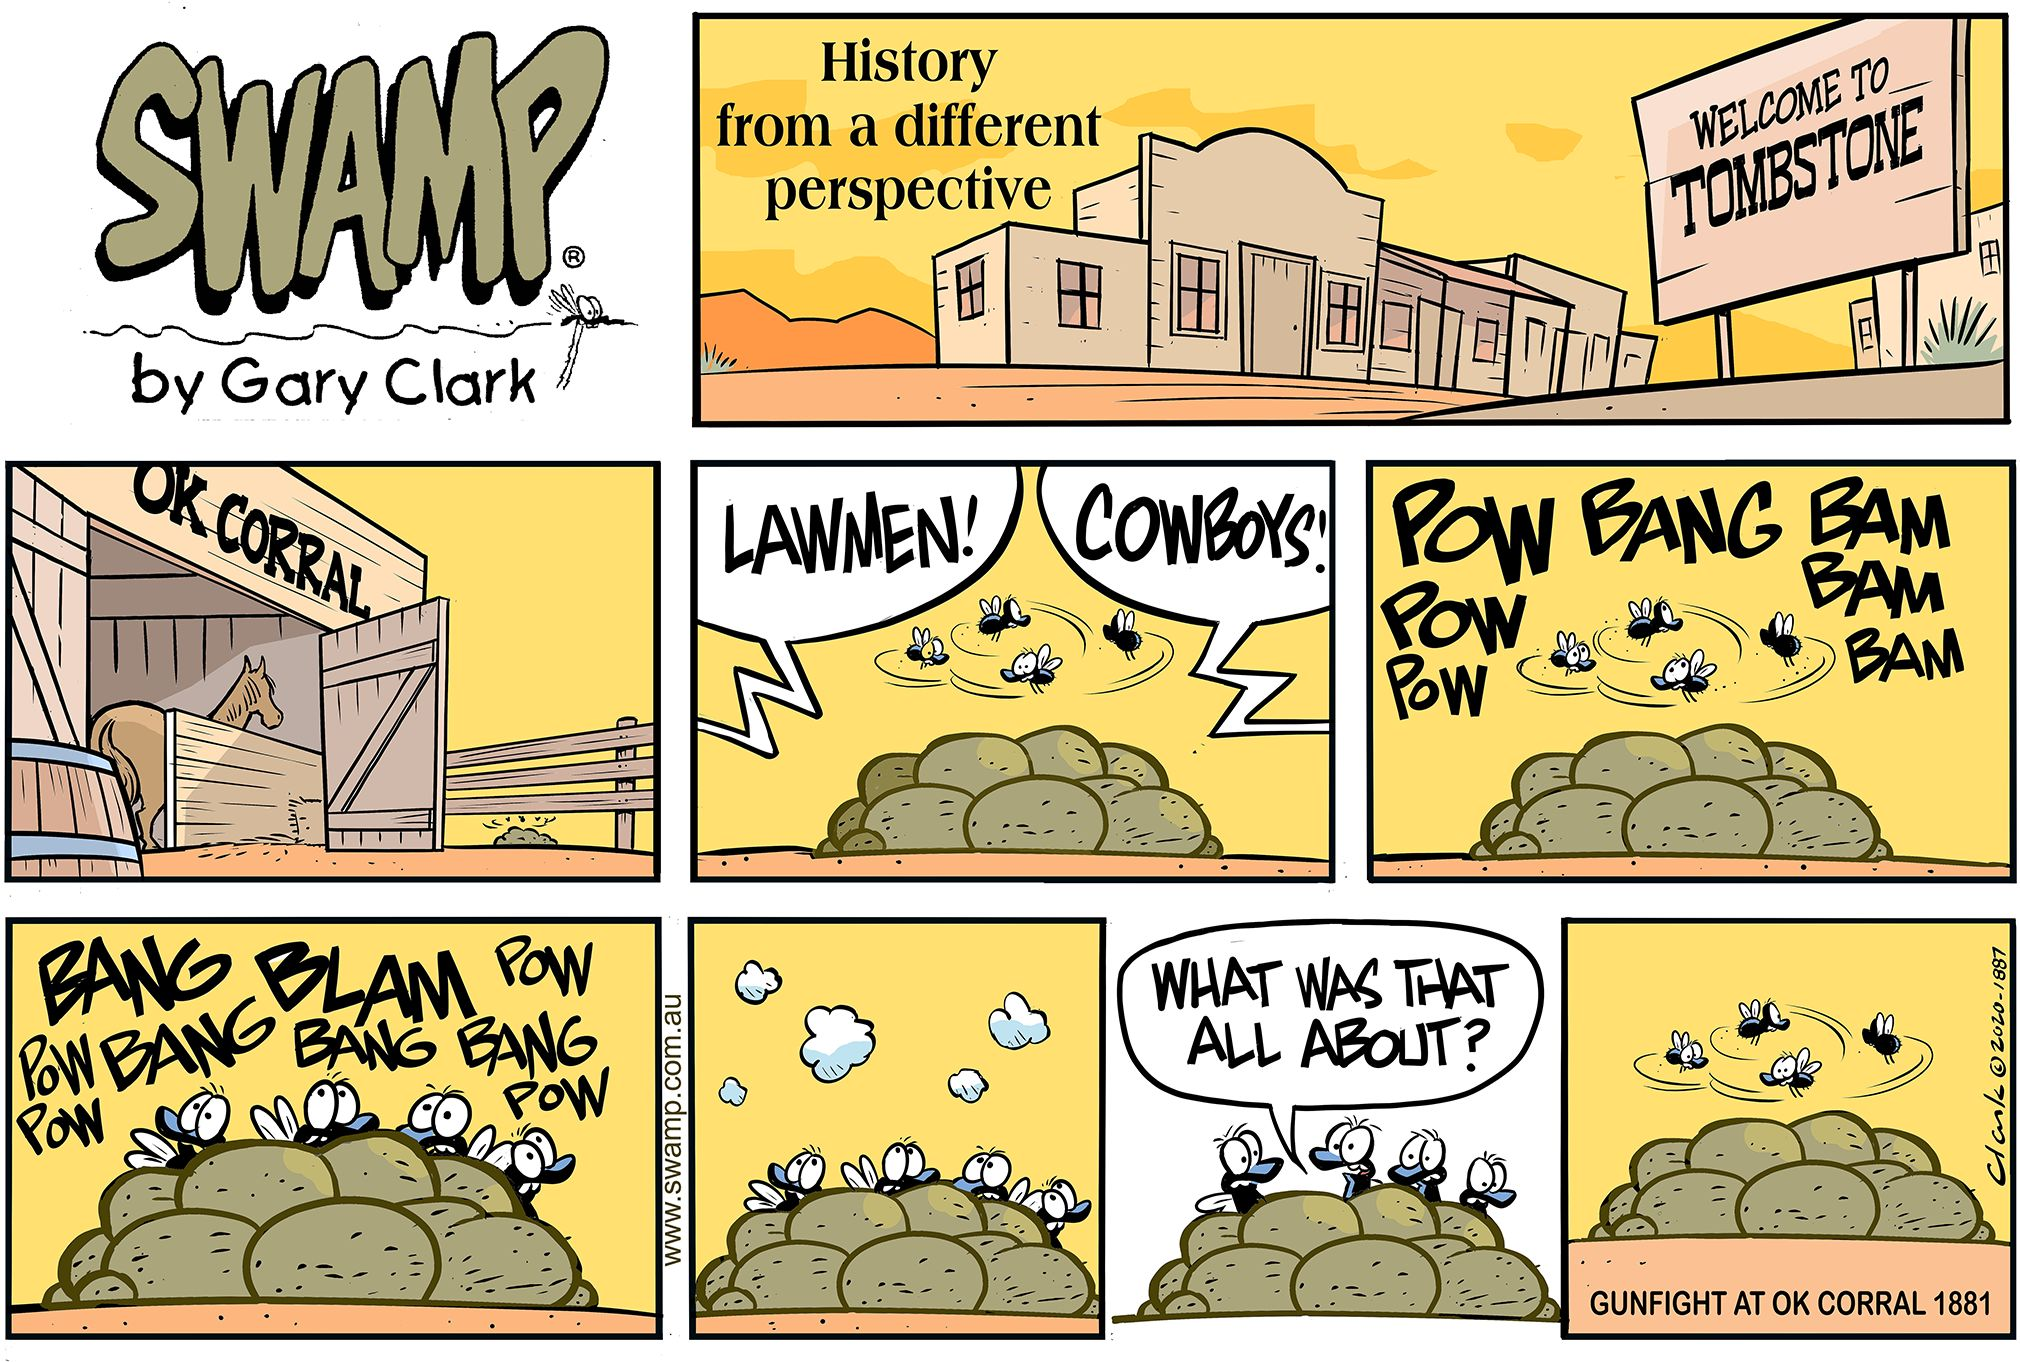 History from Flies Perspective